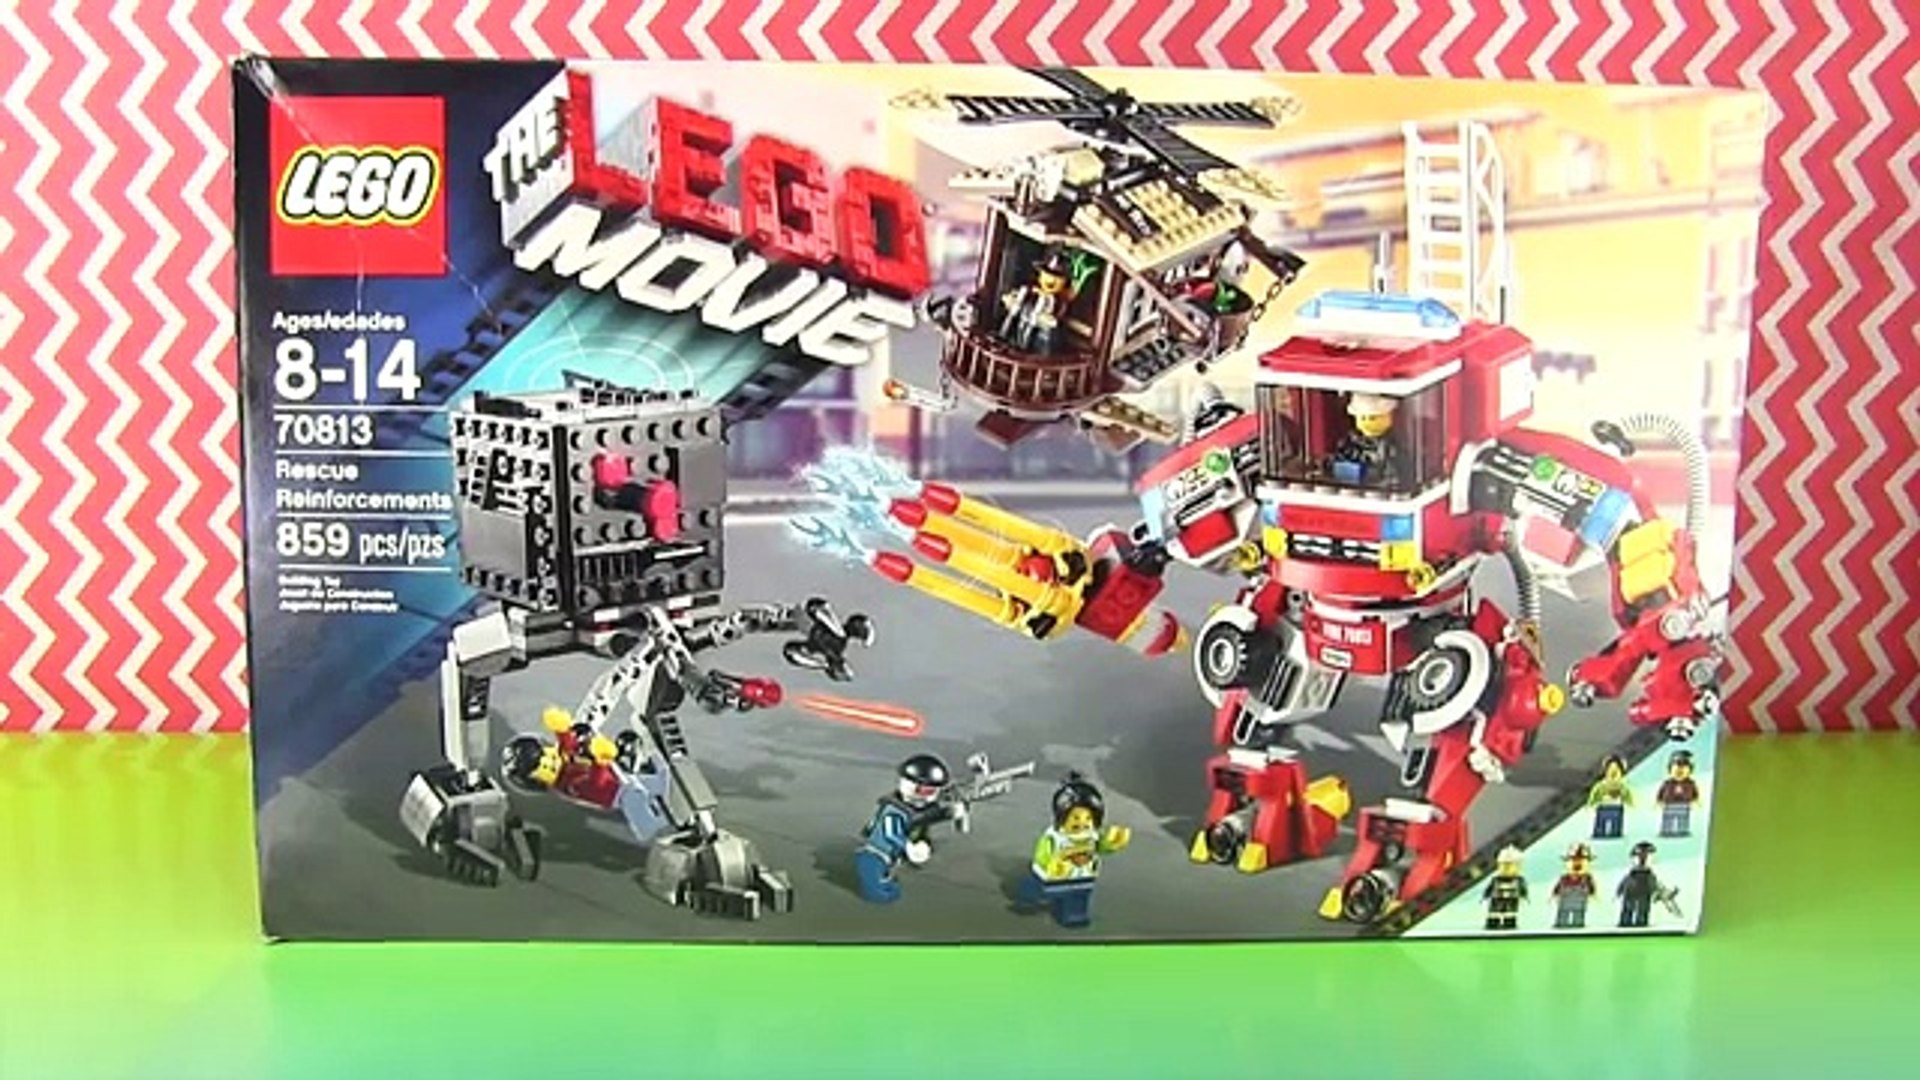 Lego Movie Rescue Reinforcements Set 70813 Fire Mech Build By Hobbykidstv Video Dailymotion